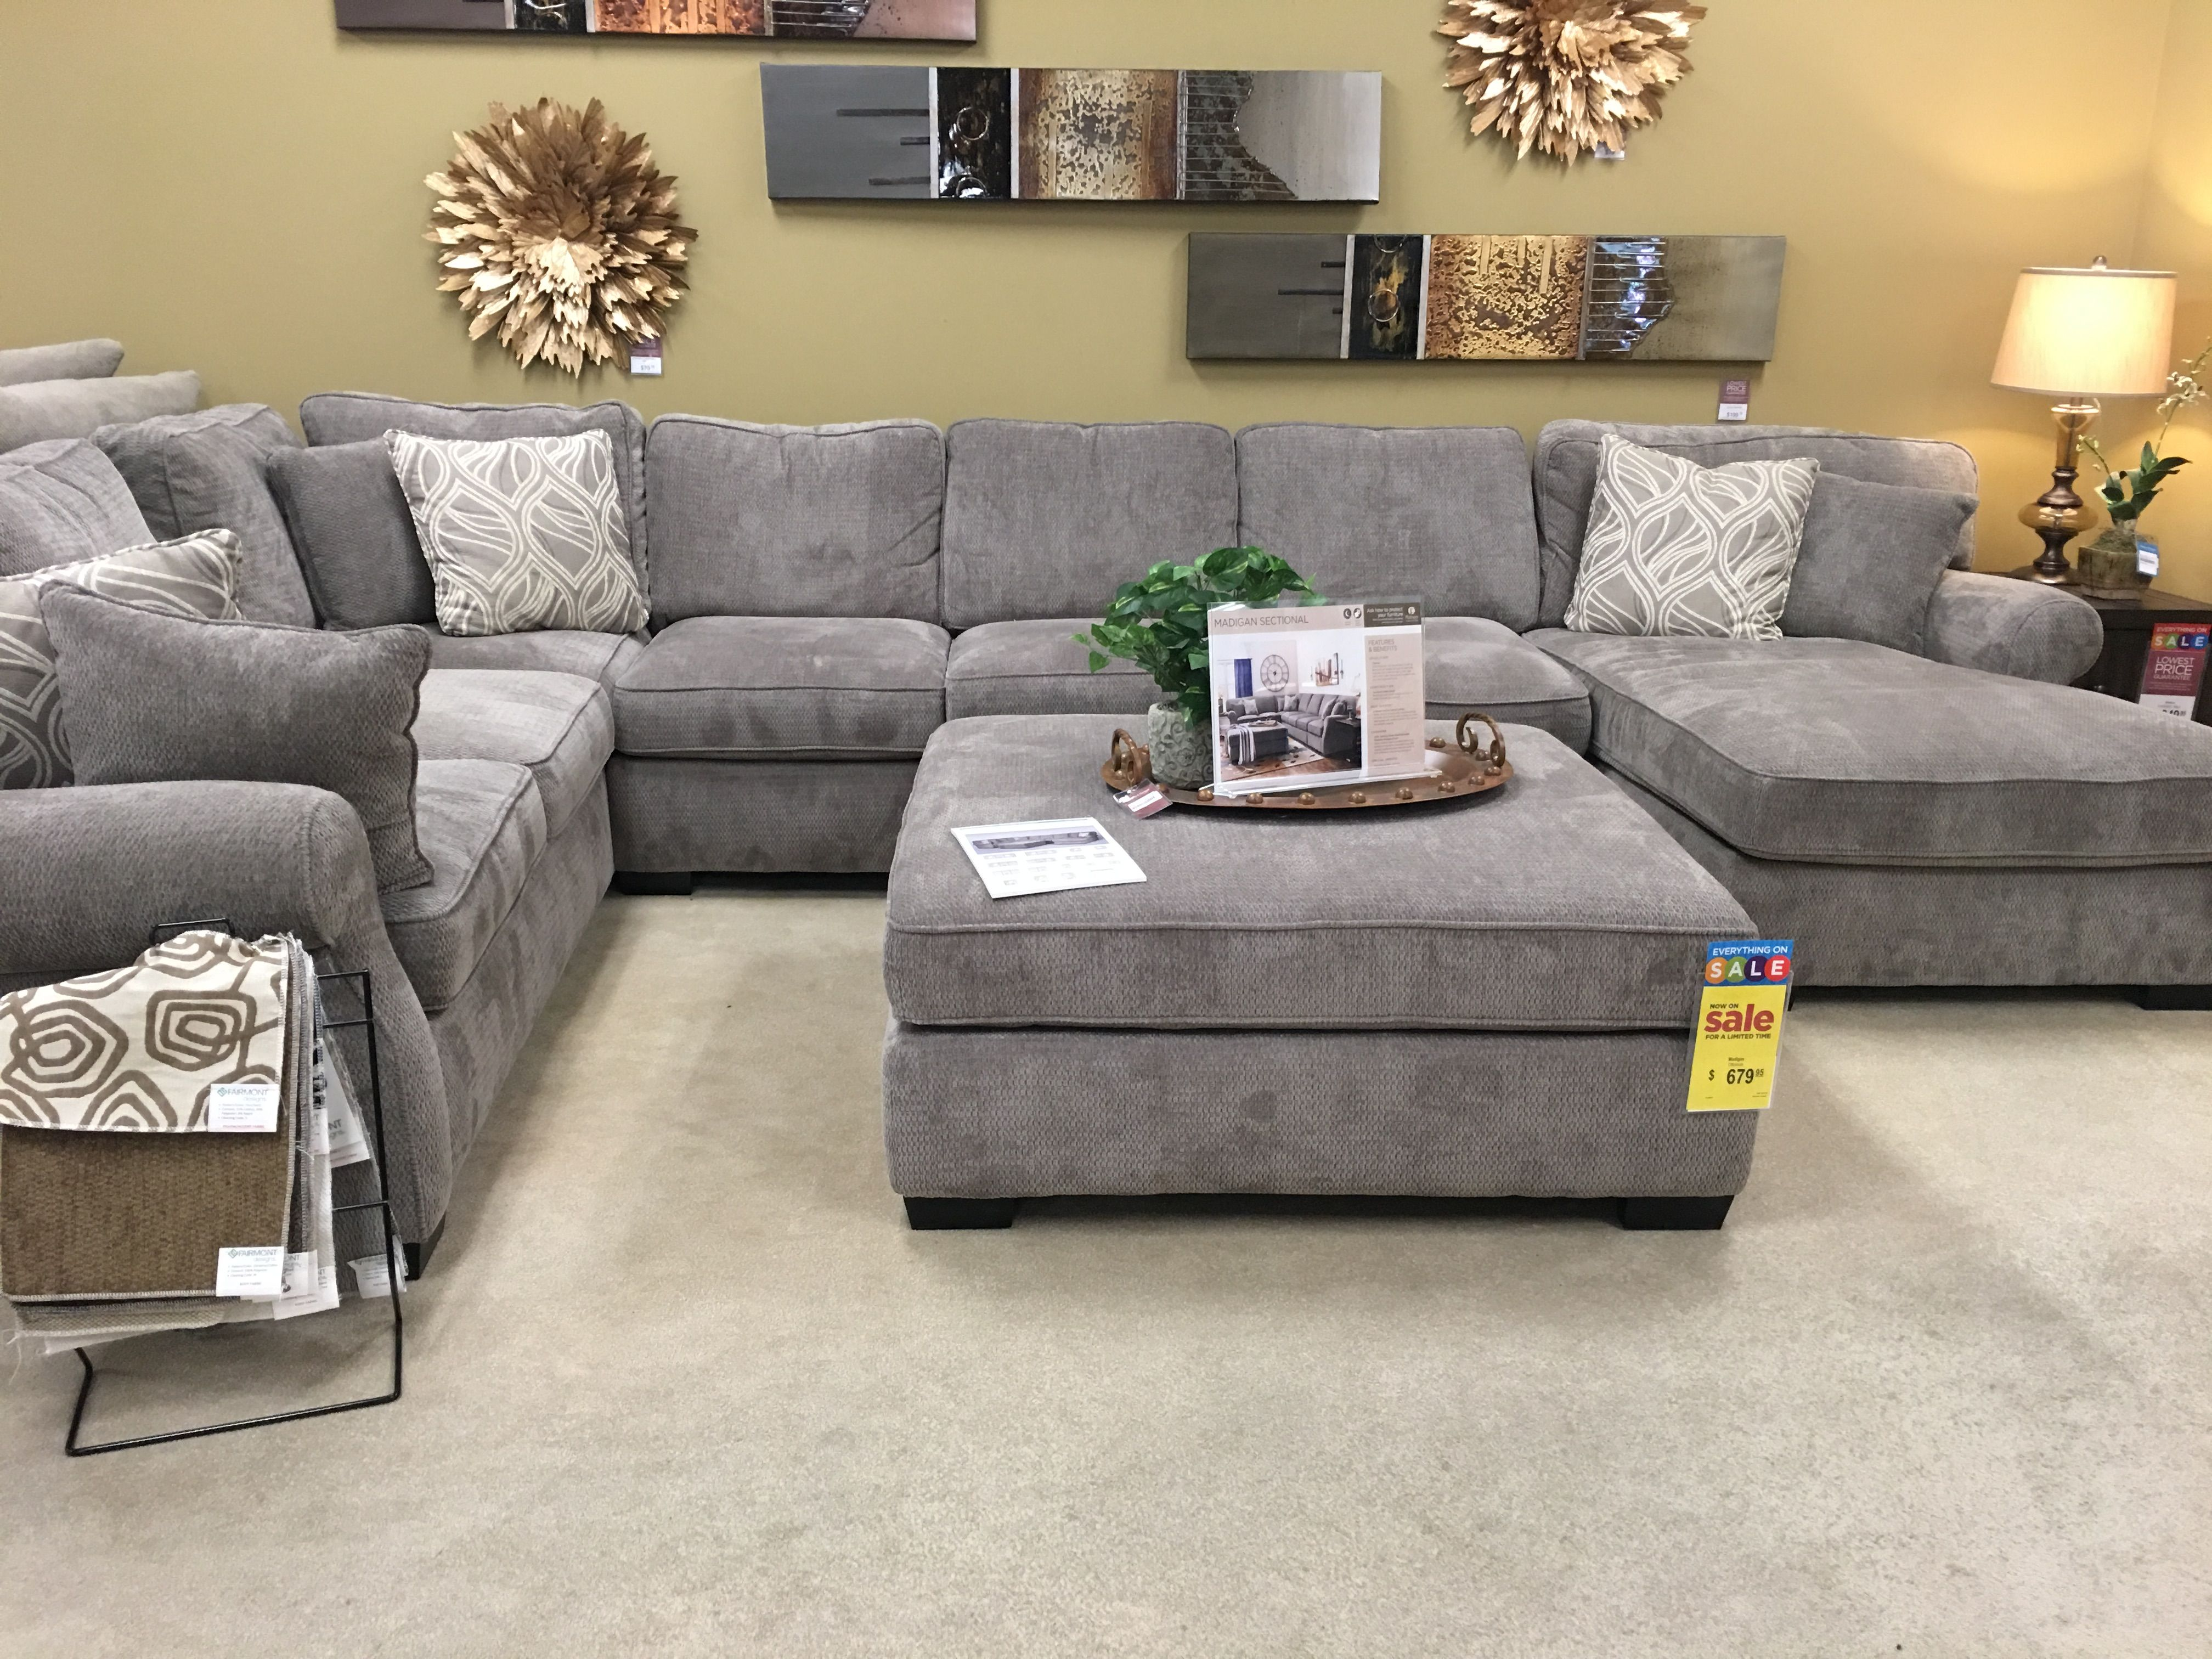 Beautiful Soft And Comfortable Sectional From Raymore And Flannigan Gray Sectional Living Room Living Room Decor Modern Simple Living Room Decor